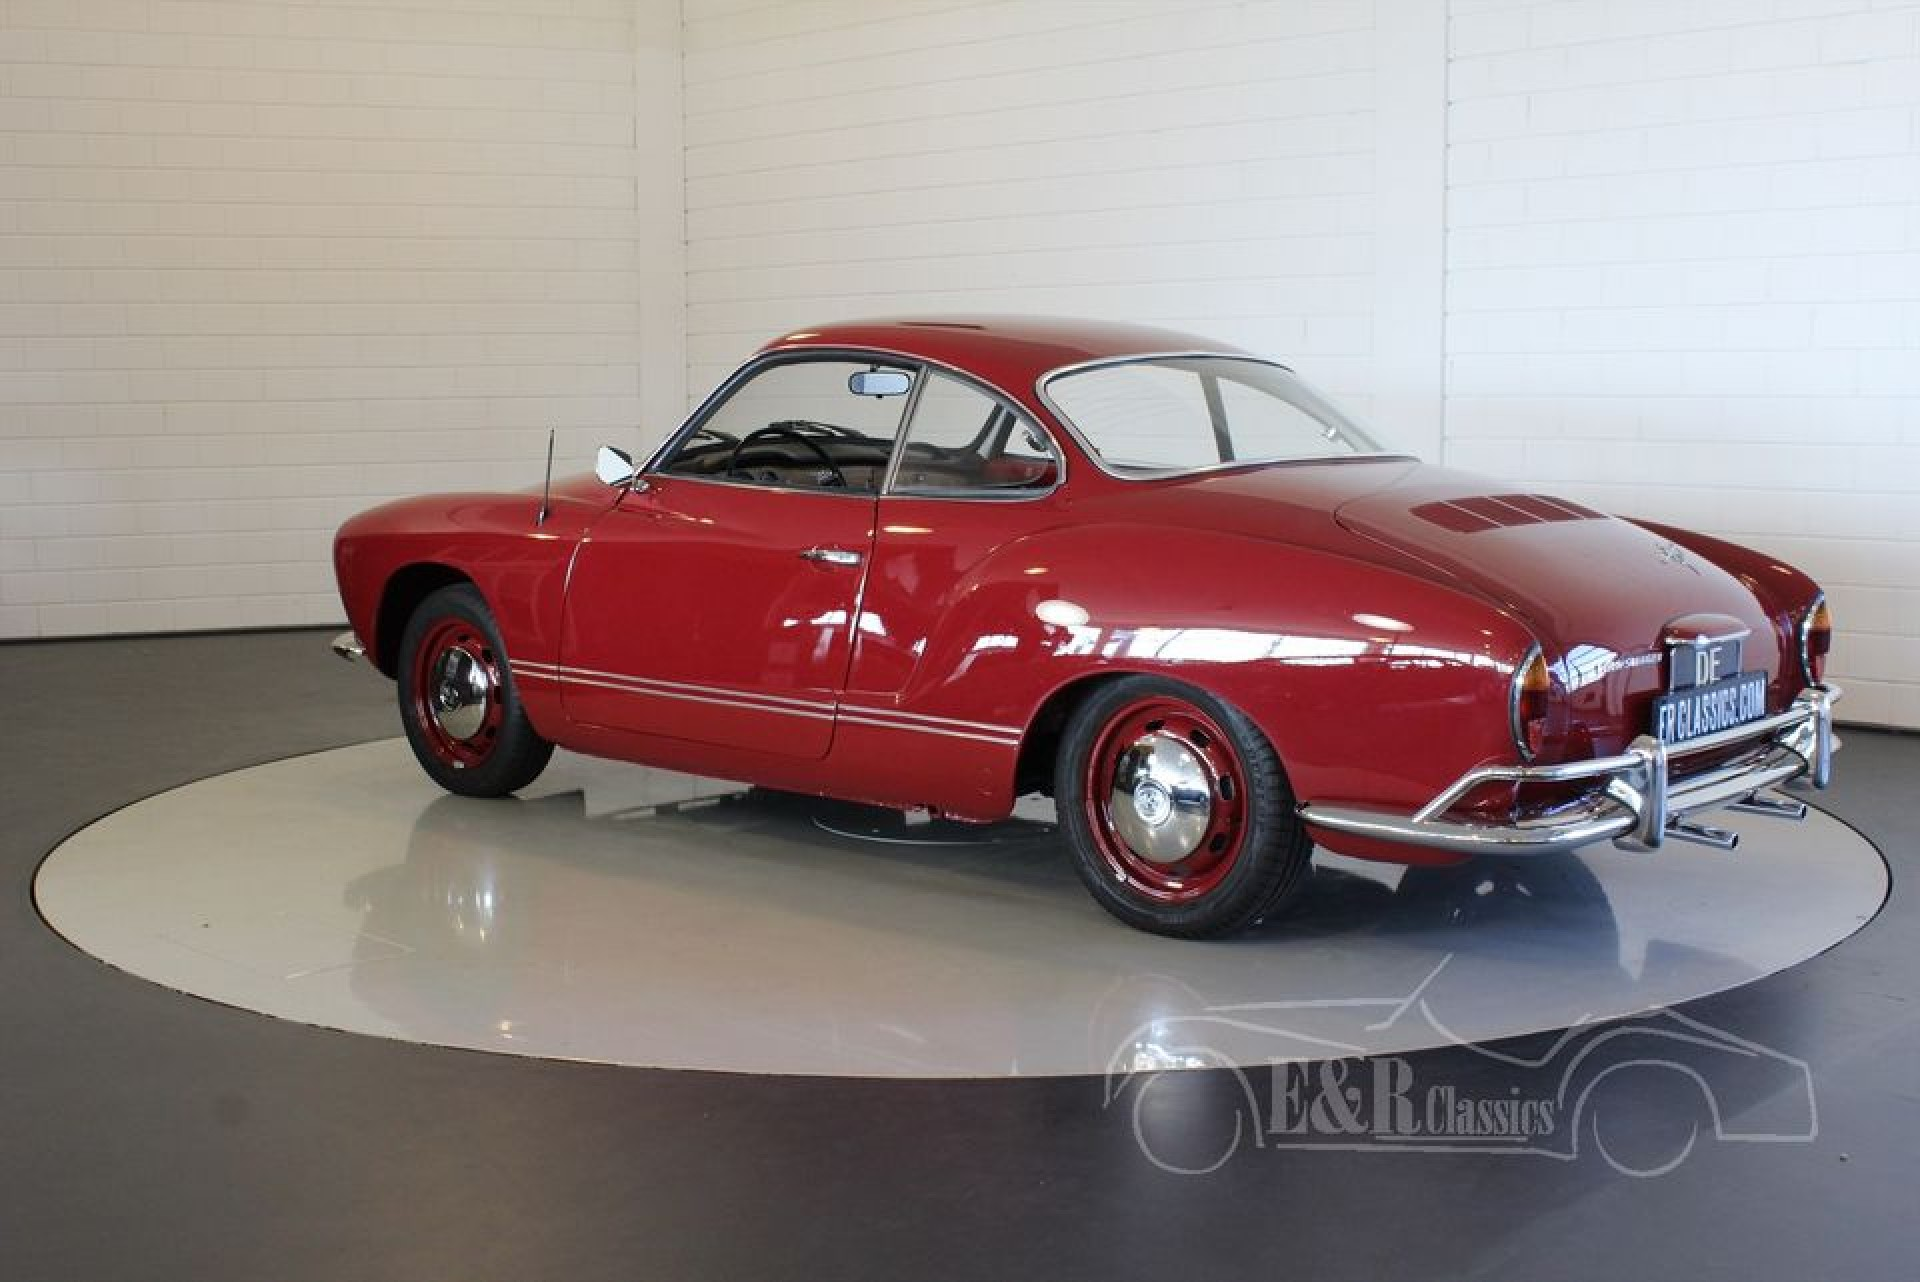 vw karmann ghia coupe 1969 for sale at erclassics. Black Bedroom Furniture Sets. Home Design Ideas